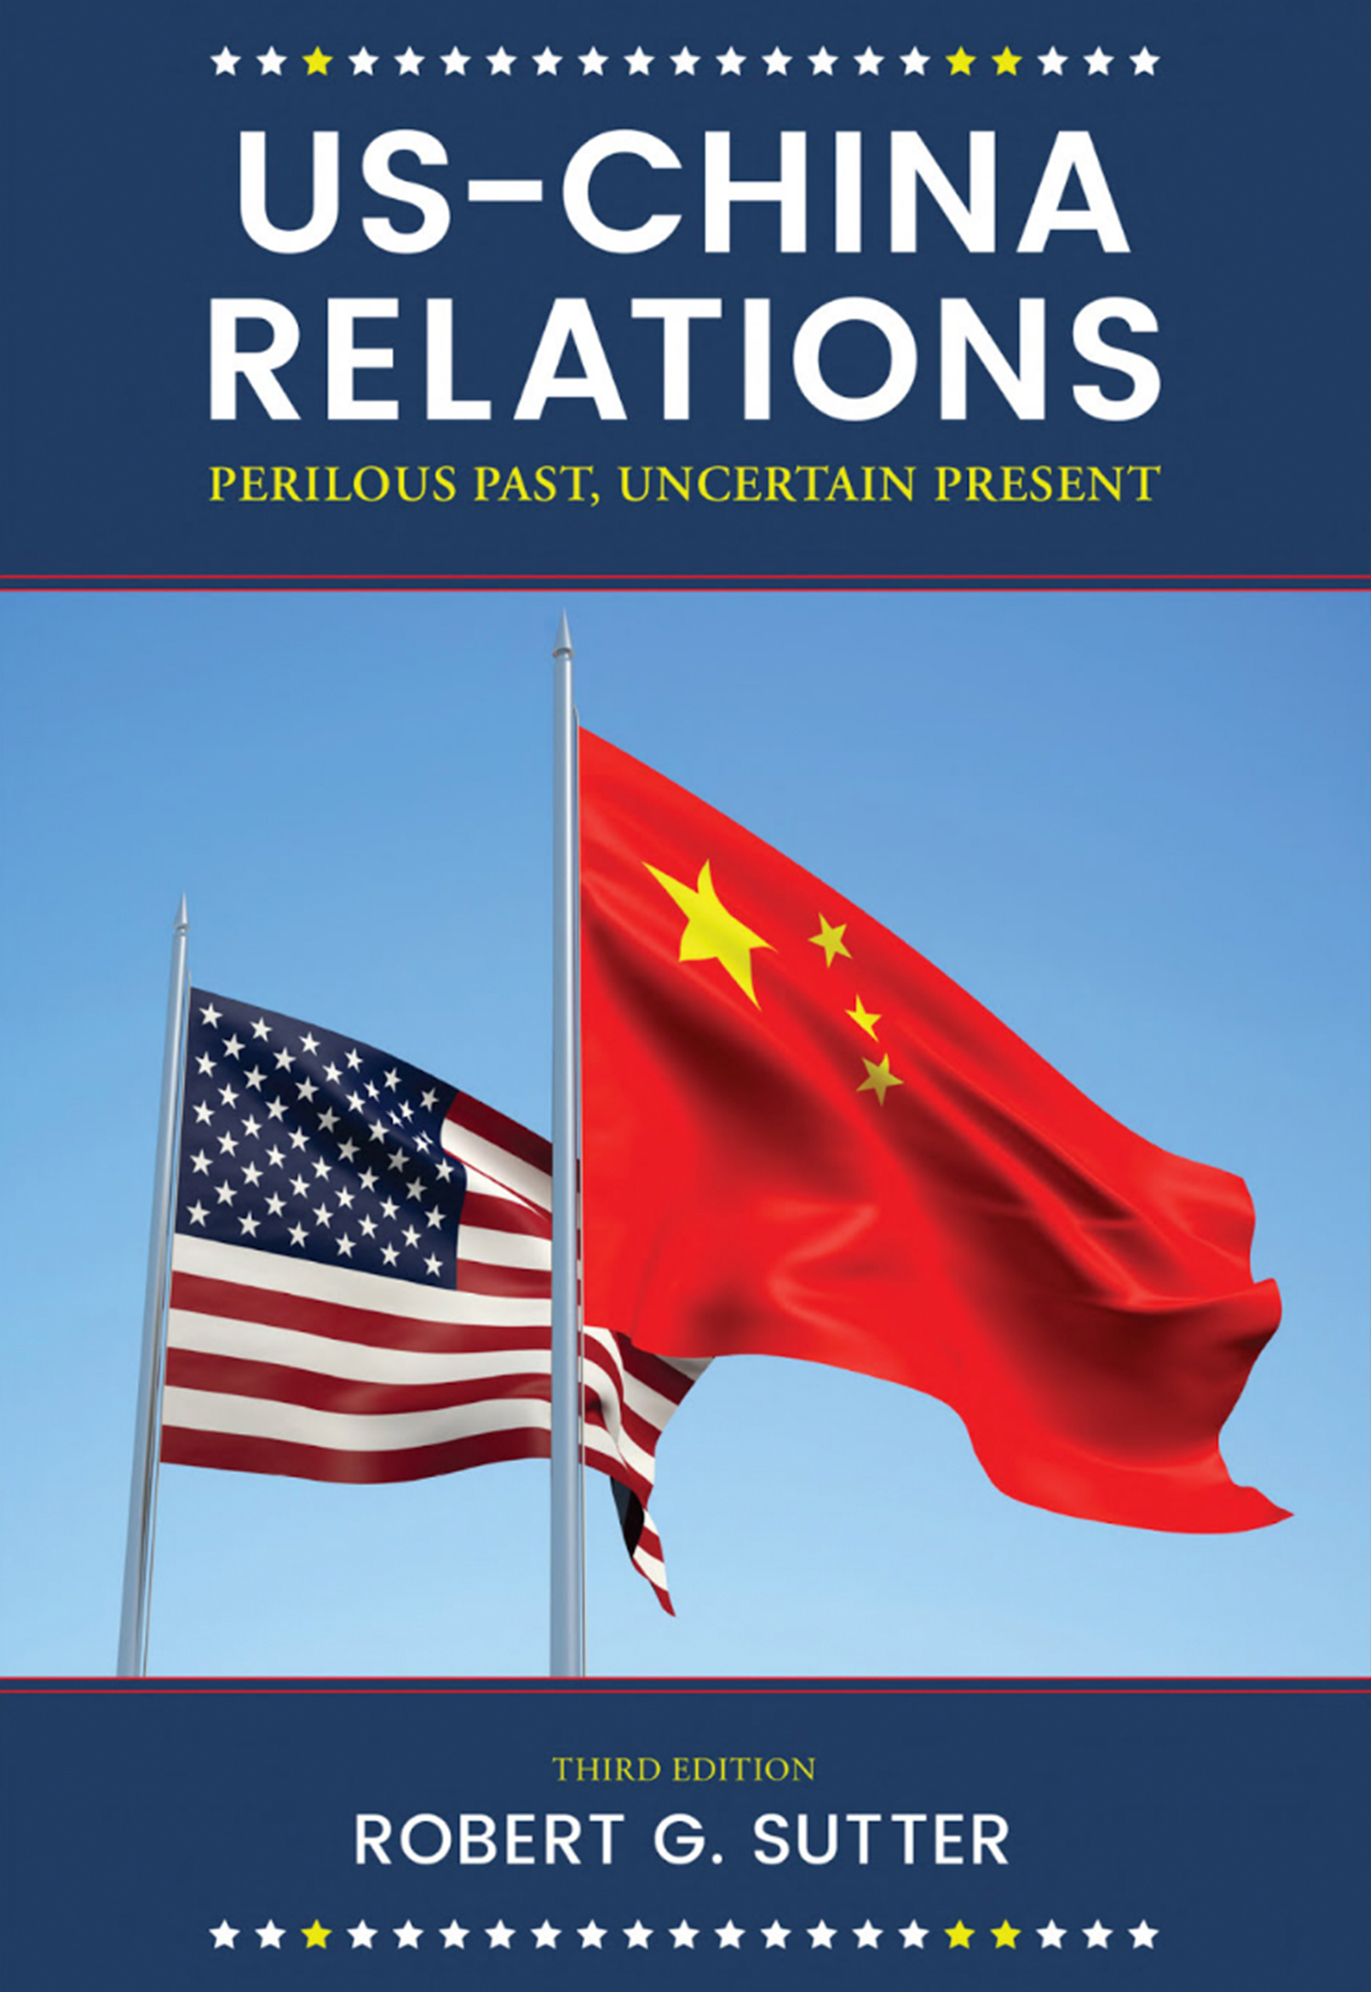 photo: text US-China Relations, Perilous Past, Uncertain Present, Third Edition Robert G. Sutter. Rows of stars frame the top and the bottom of the cover, in the middle of the page are the Chinese and American Flags flying